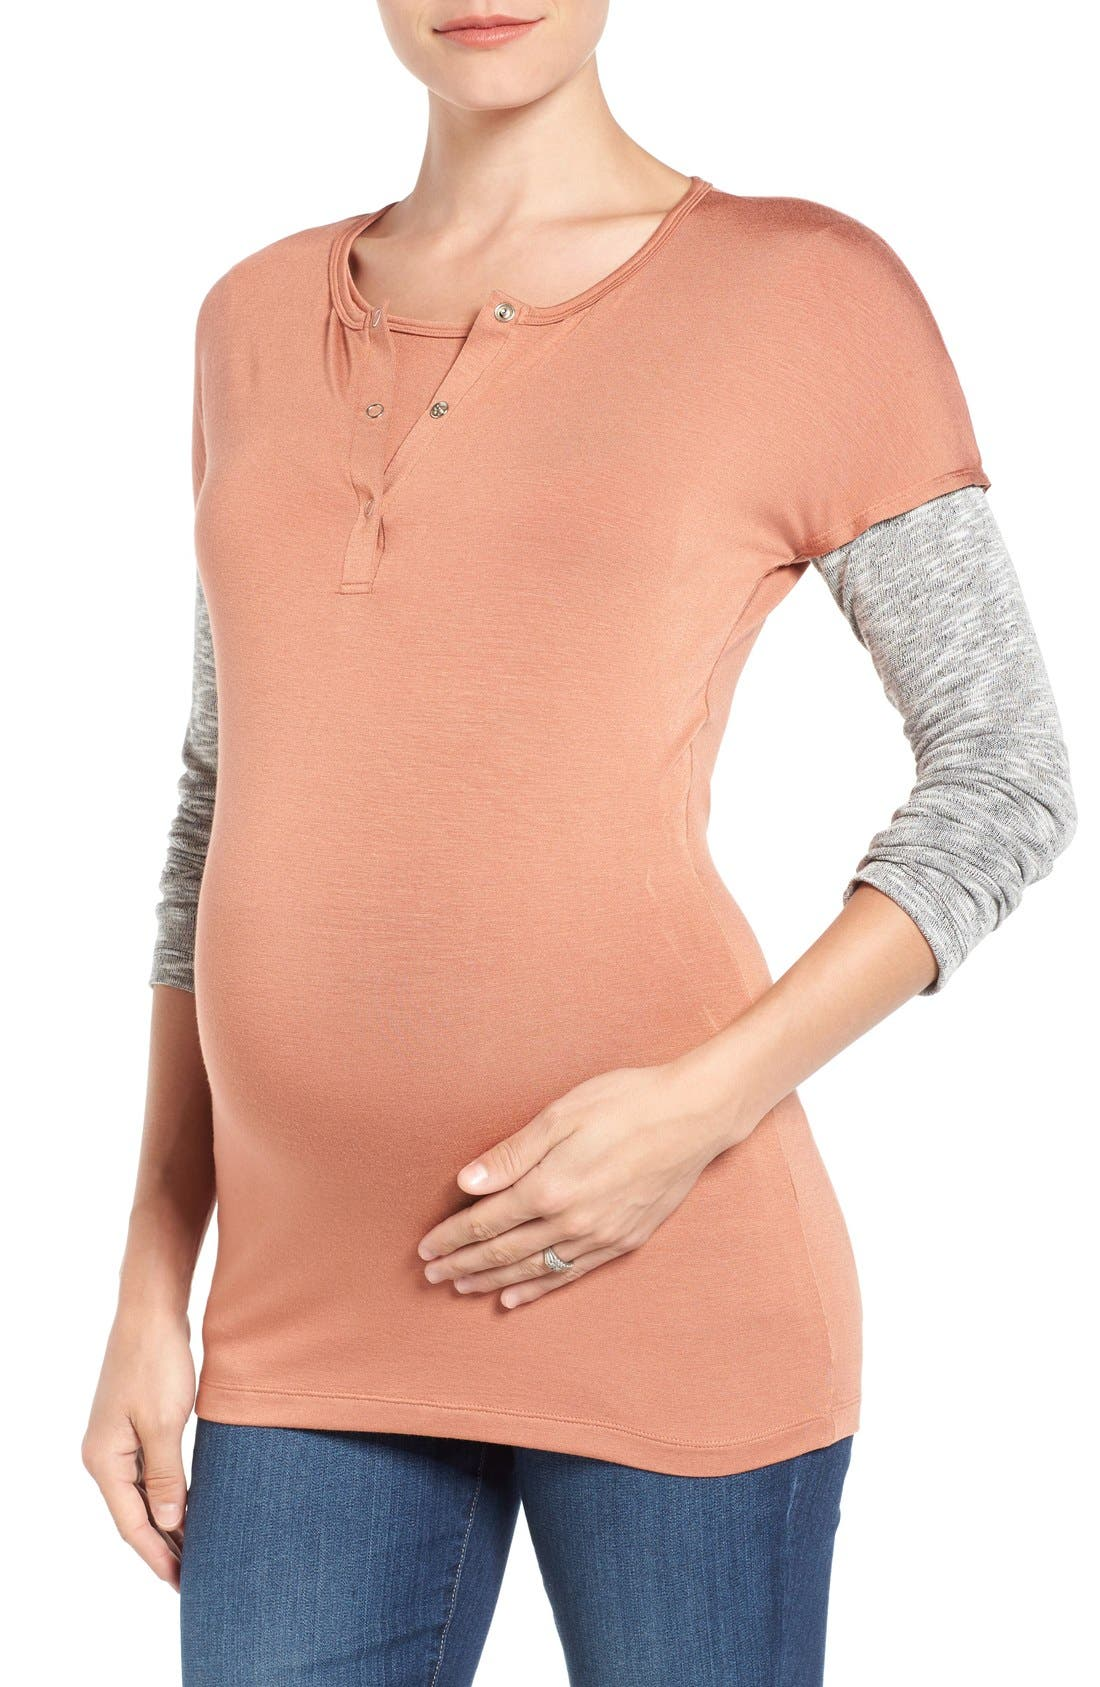 LAB40 'Maya' Maternity/Nursing Top